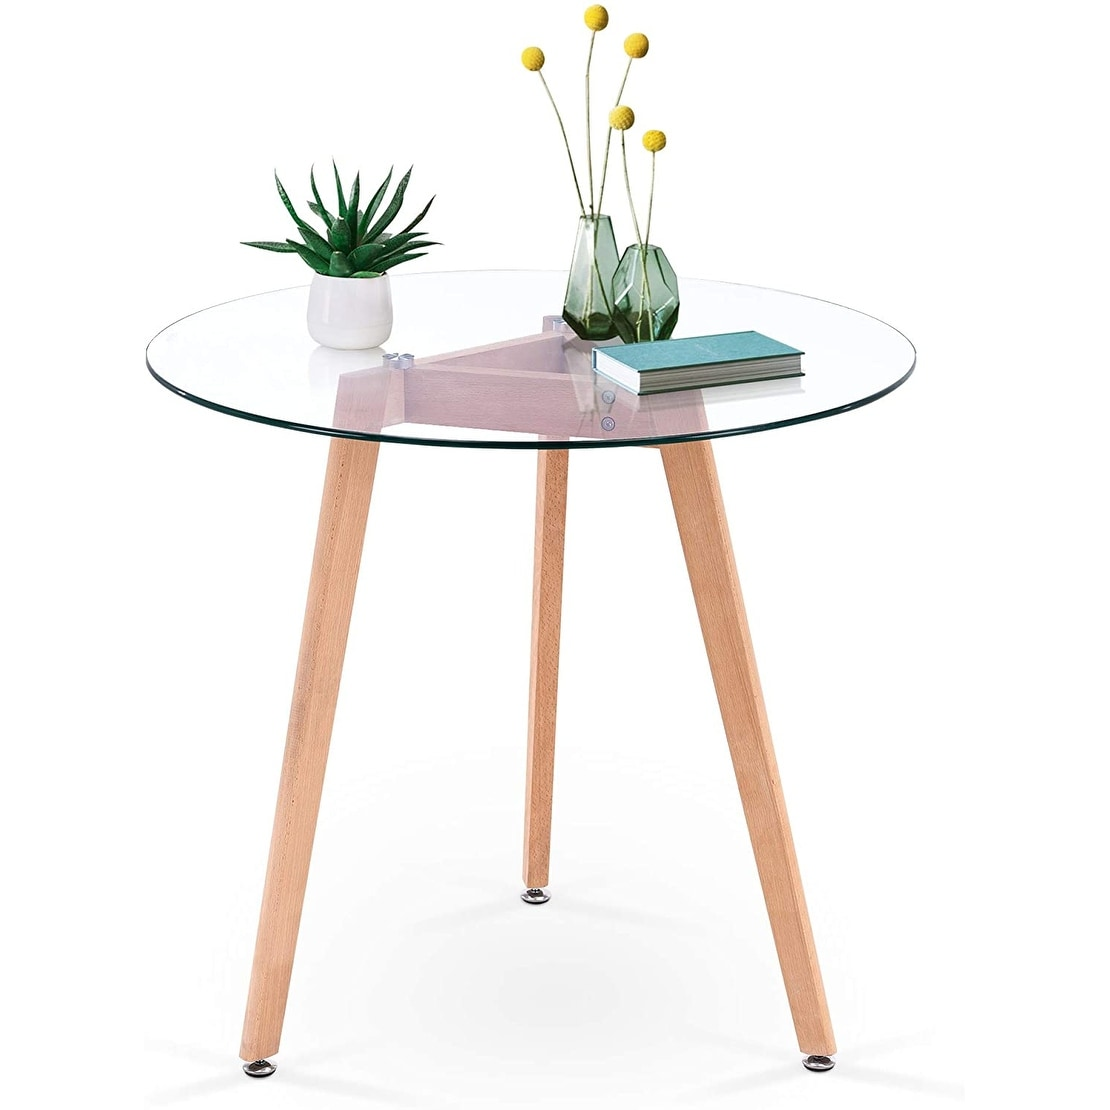 ivinta modern small dining table round glass coffee table farmhouse kitchen table for small spaces accent table sofa table